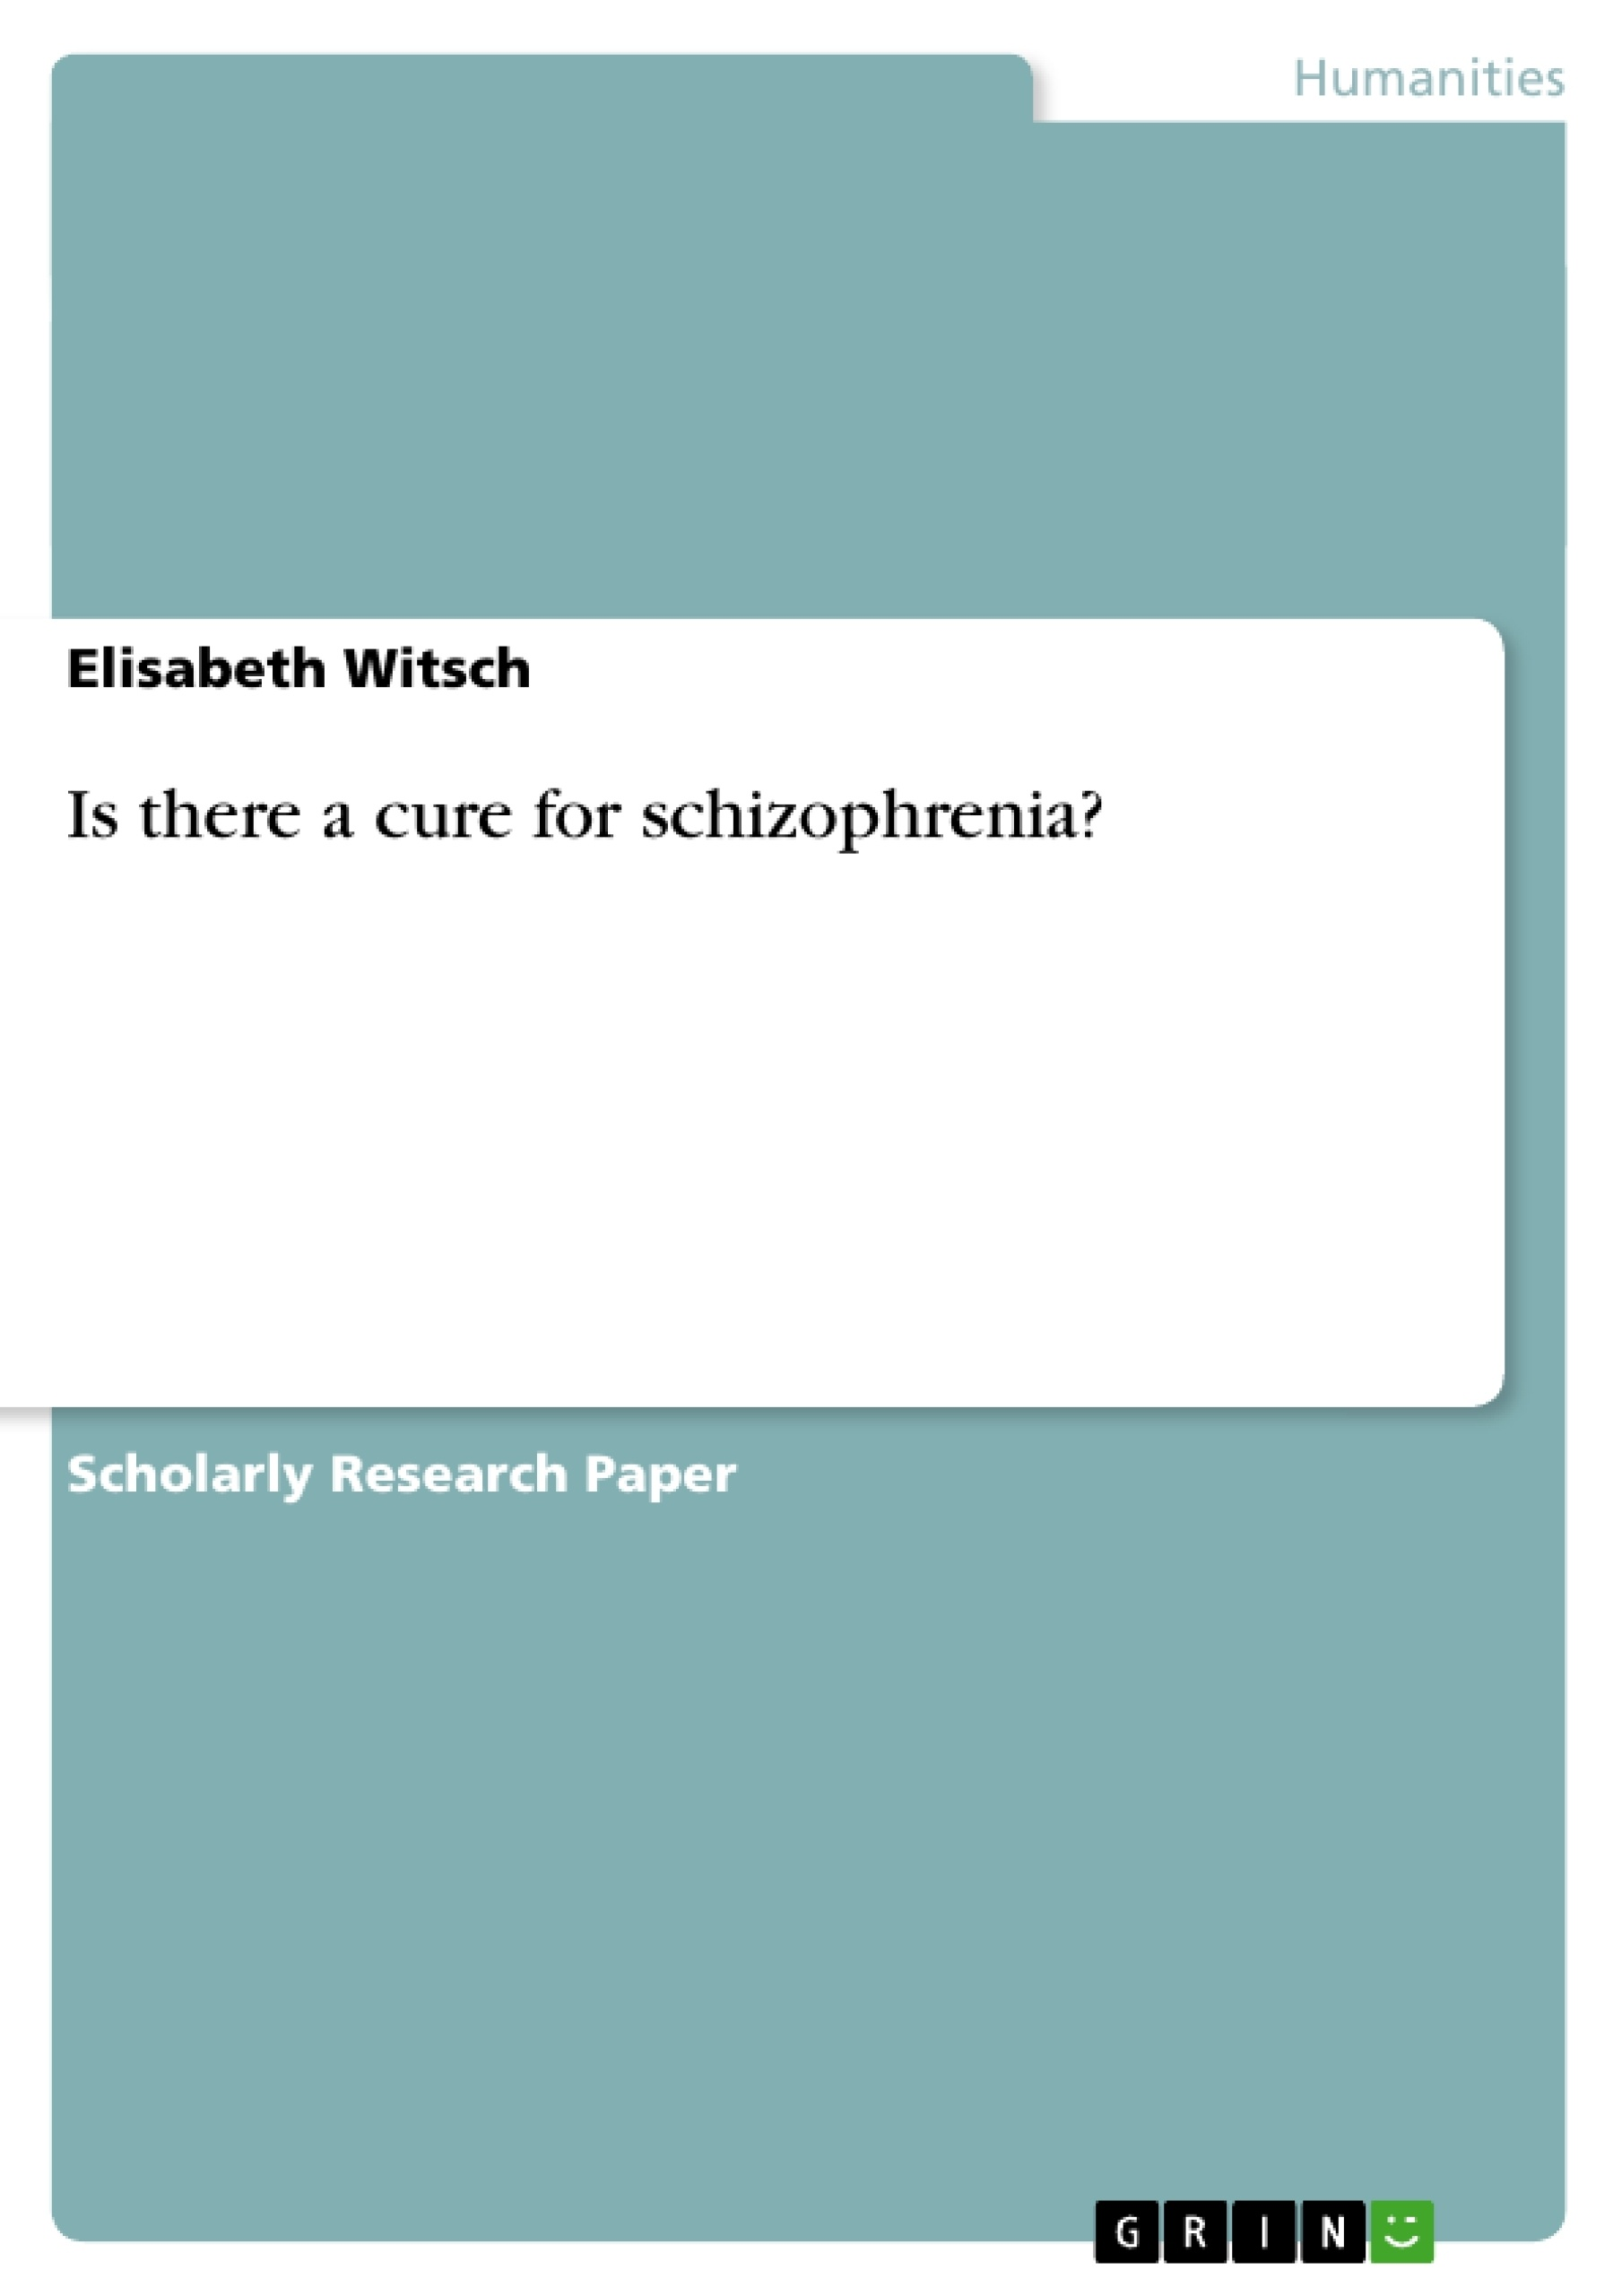 schizophrenia essay titles  schizophrenia essay titles